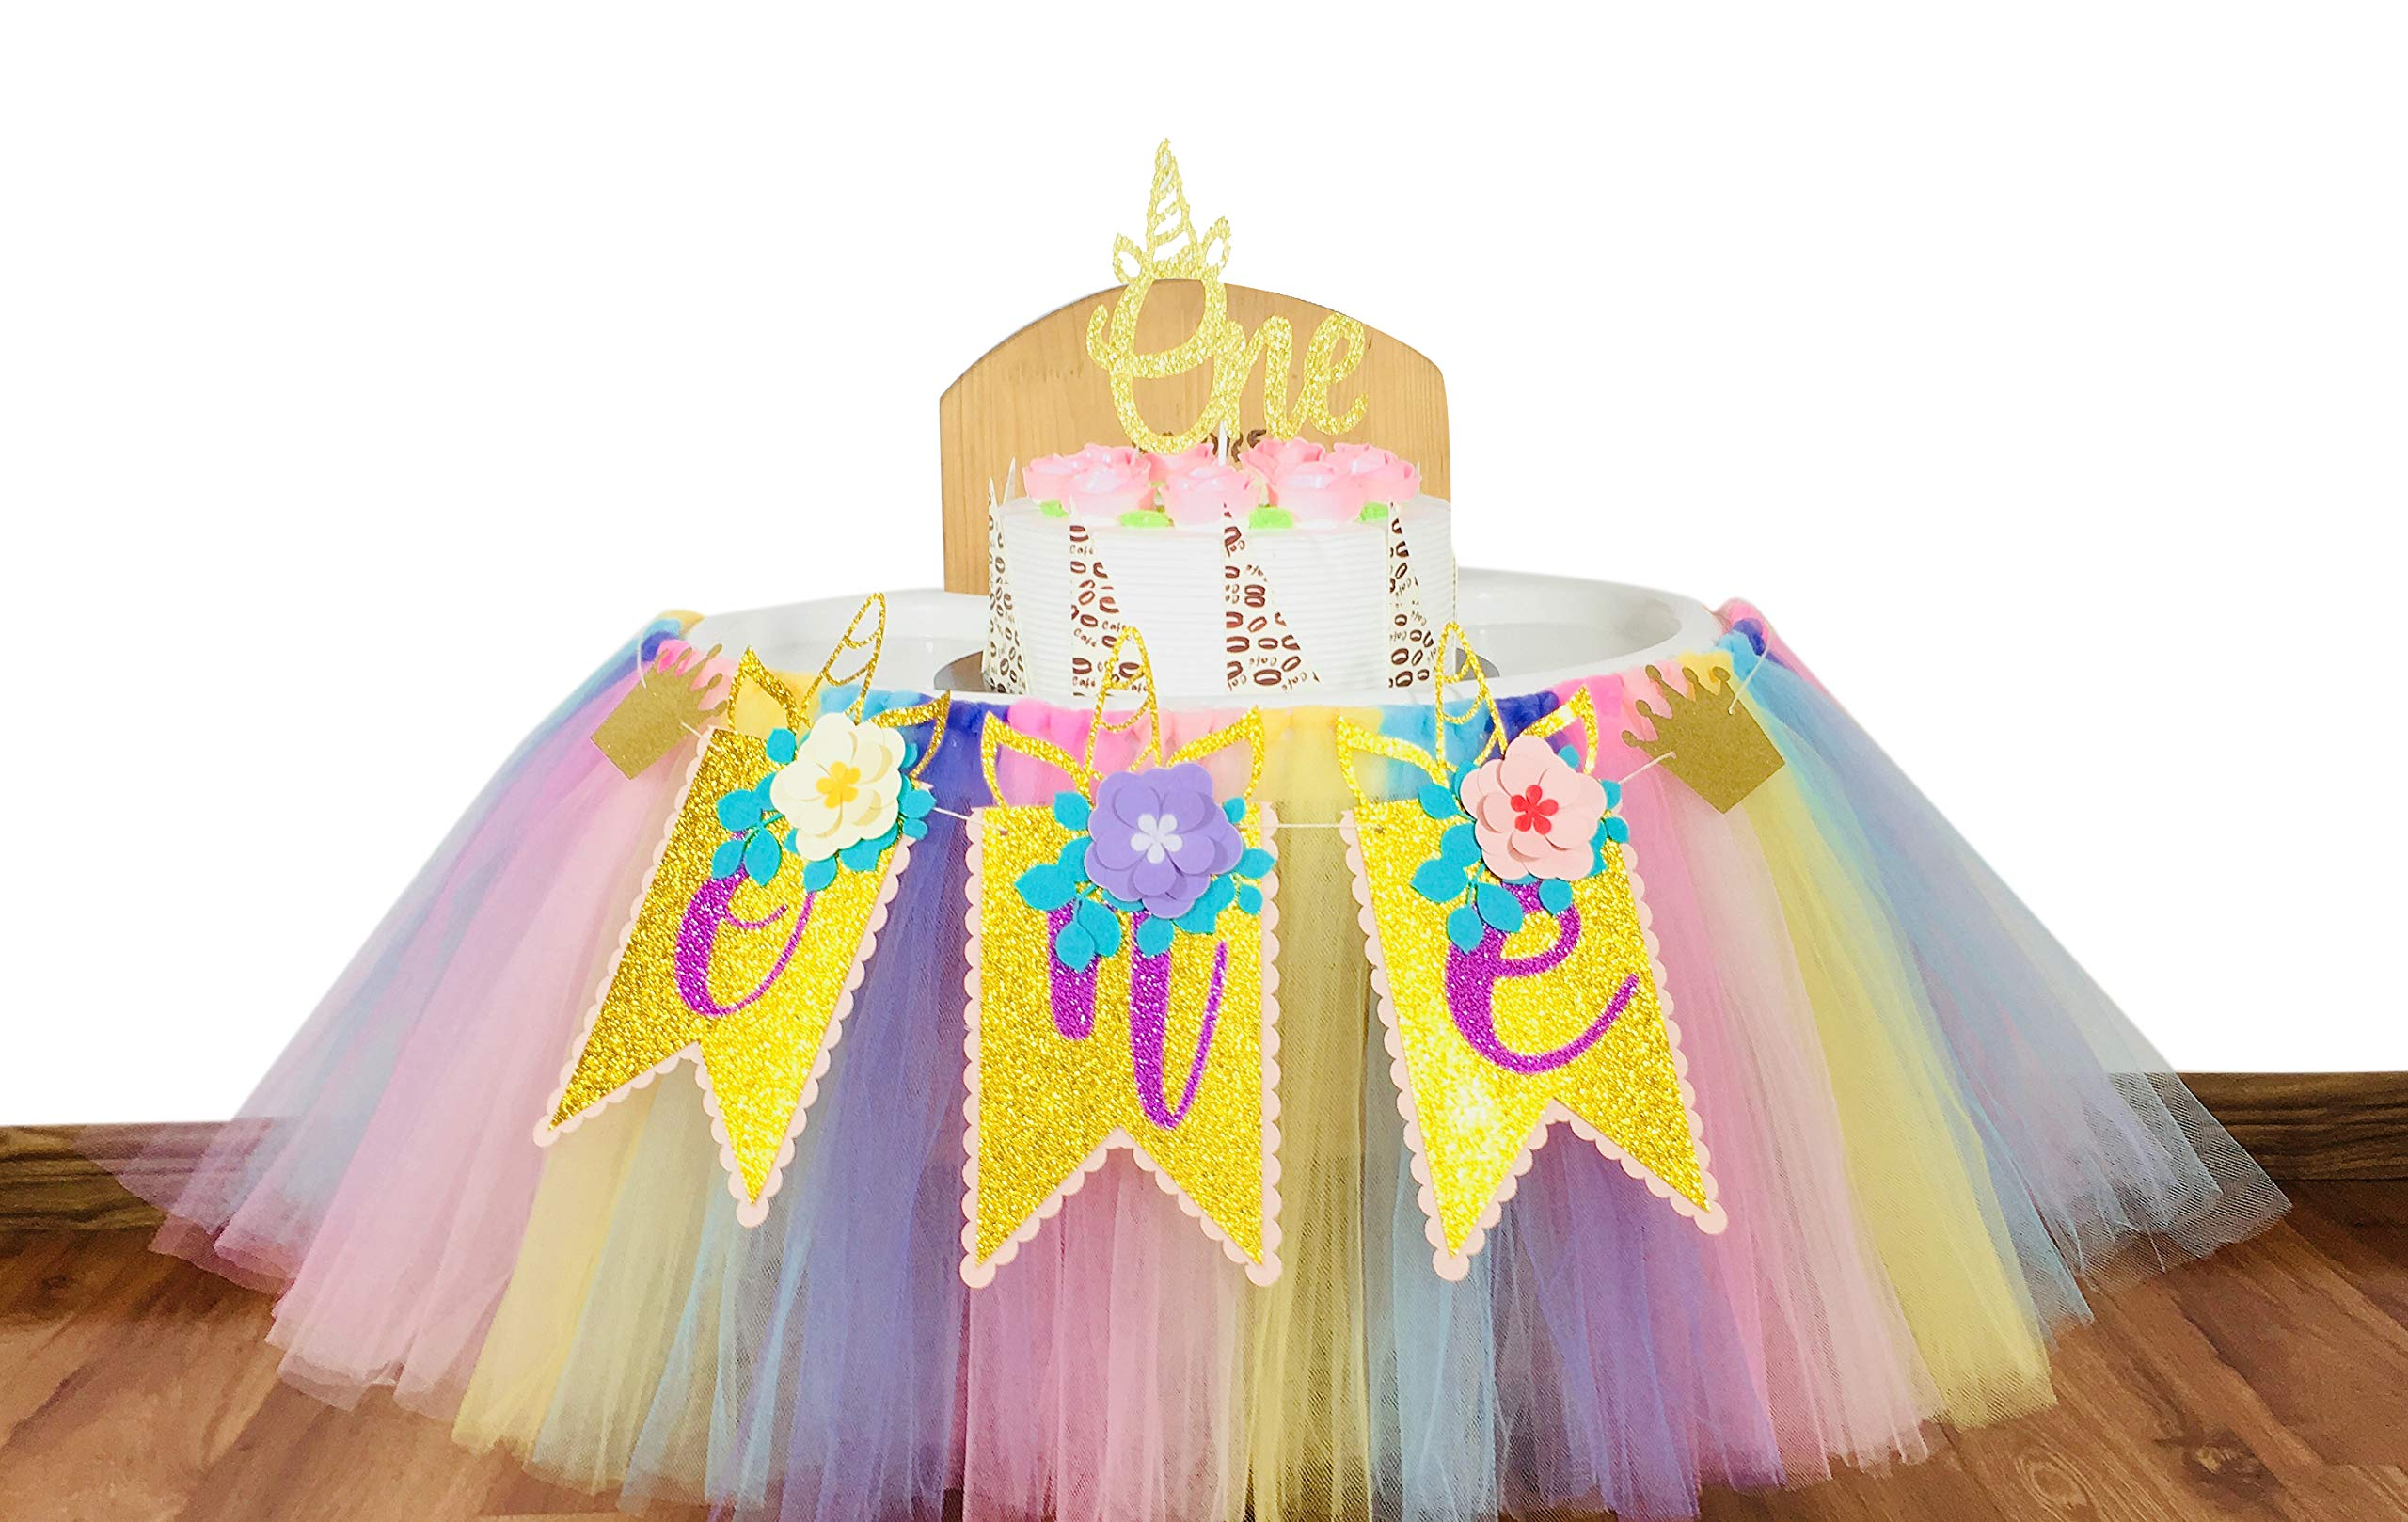 E&L 1st Birthday Girl 3 in 1 High Chair Decorations Set, Unicorn Themed High Chair Tutu, & One Flower Themed Pennant & One Cake Topper, Birthday Party Supplies, One Unicorn Themed Party Decorations by E&L